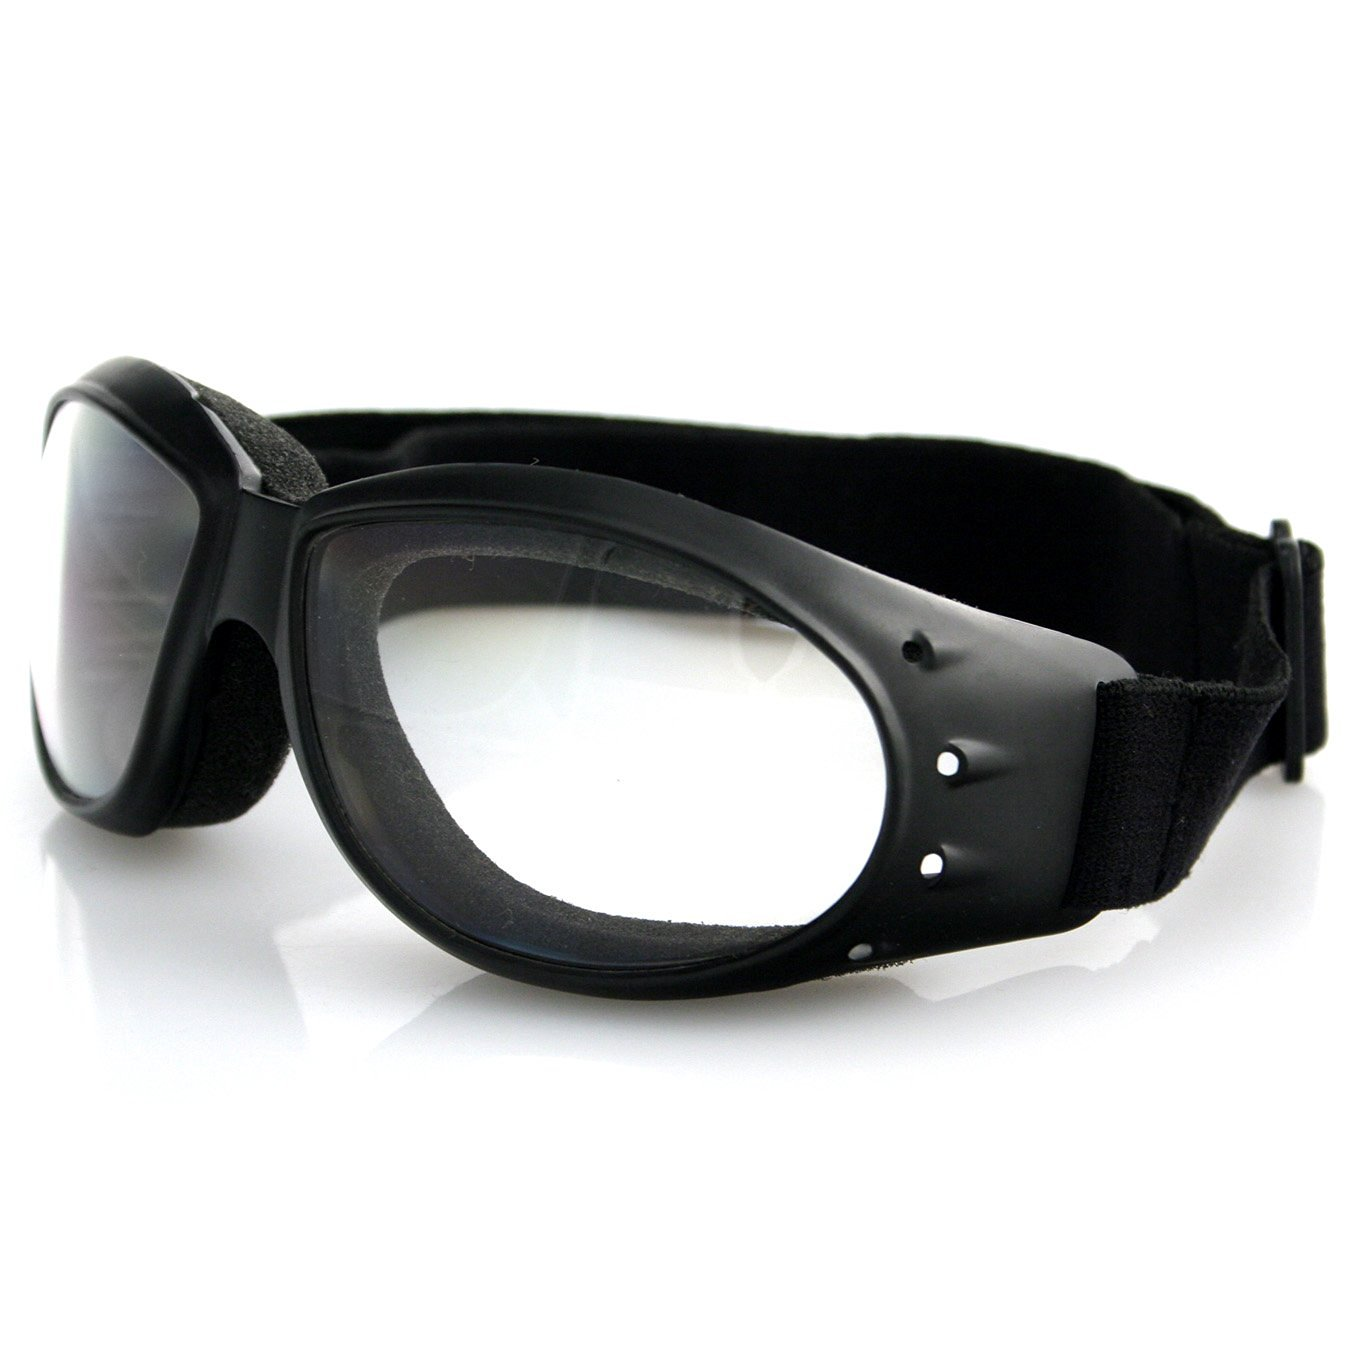 b17d8247ac323 Get Quotations · Bobster Cruiser Anti-fog Clear Lenses Vented Padded Goggles